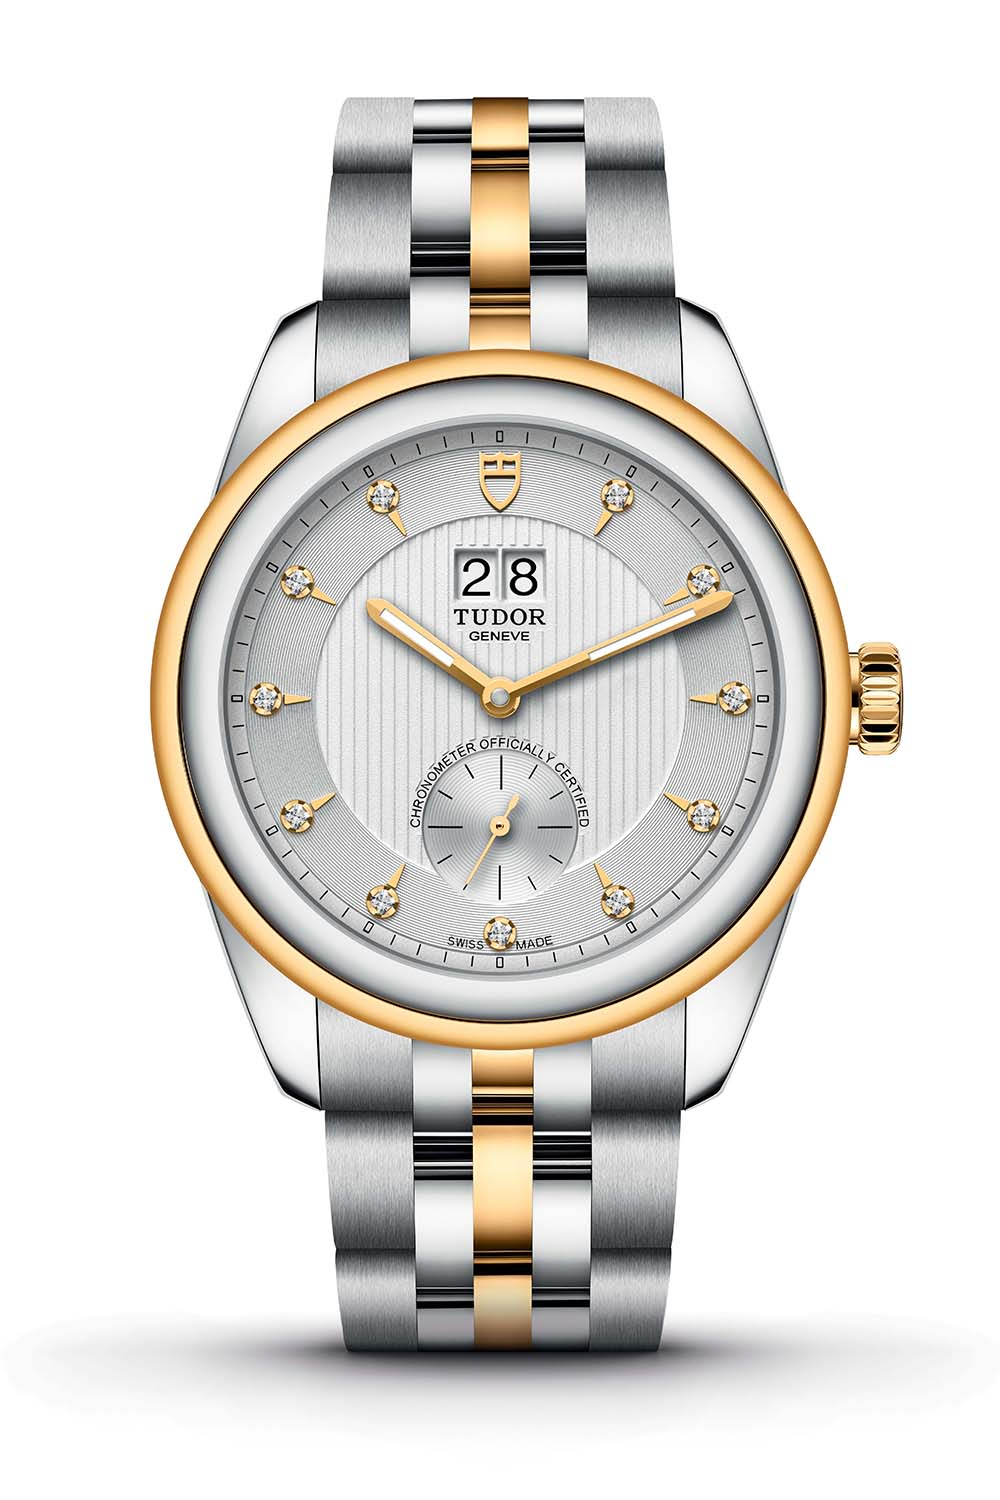 Tudor Glamour Double Date 42mm Manufacture Movement 57100 - 10